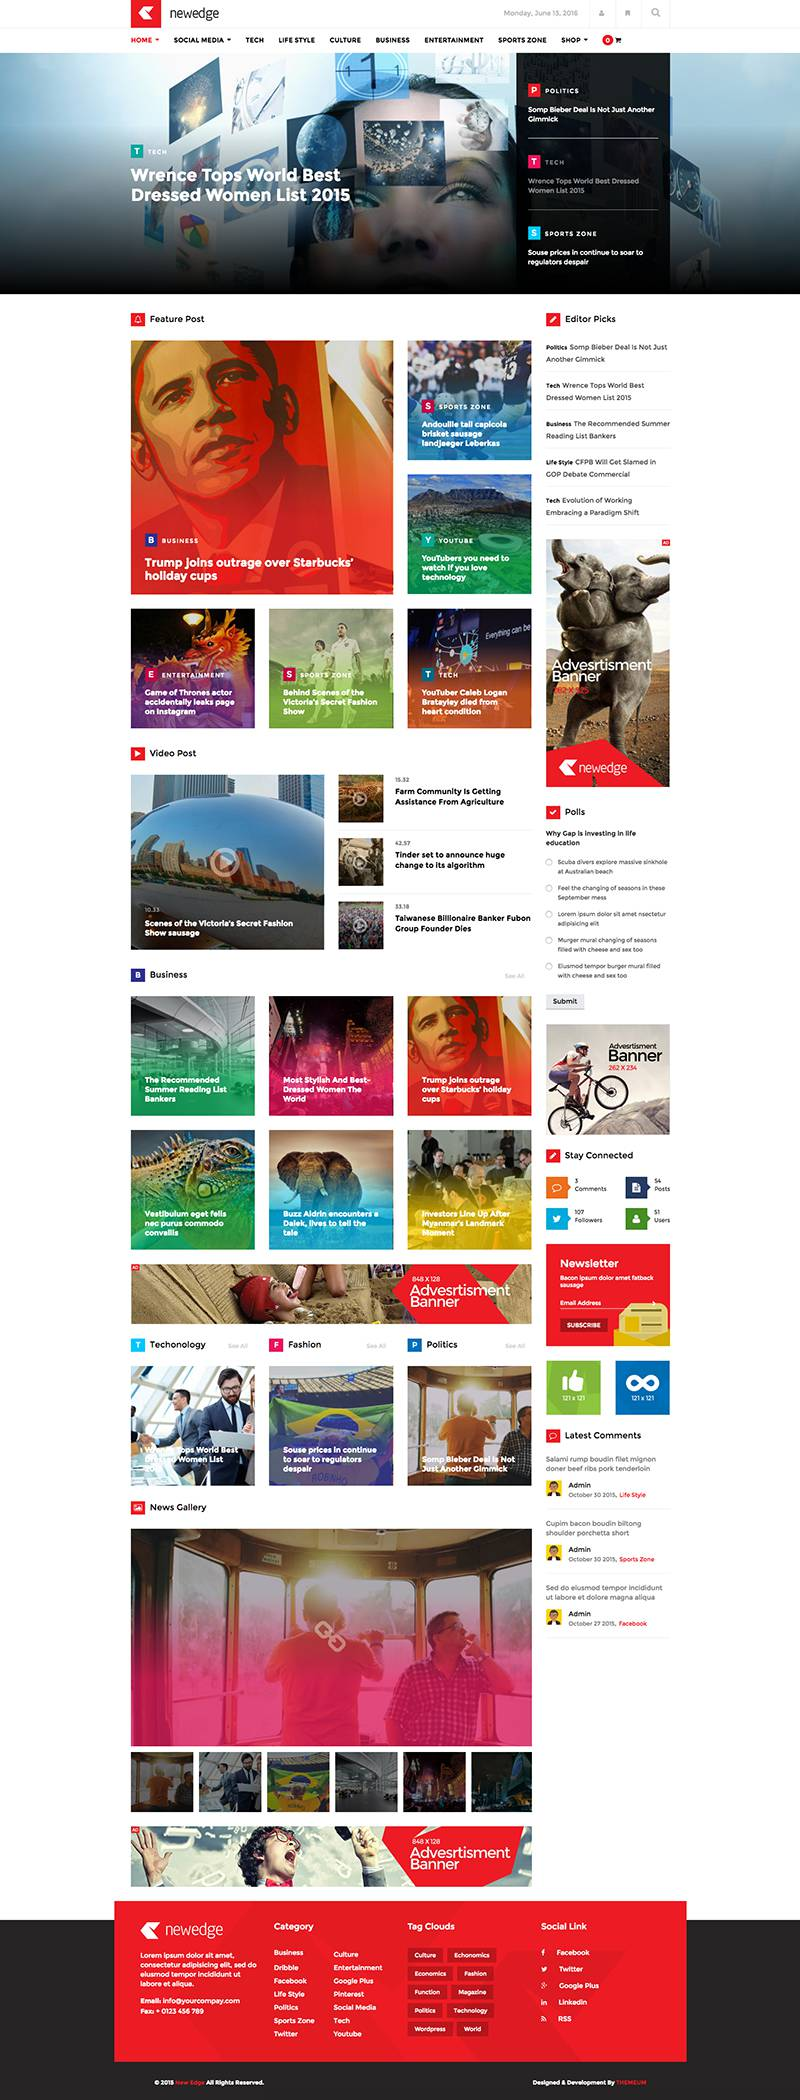 NewEdge Responsive WordPress Magazine Theme - WPExplorer